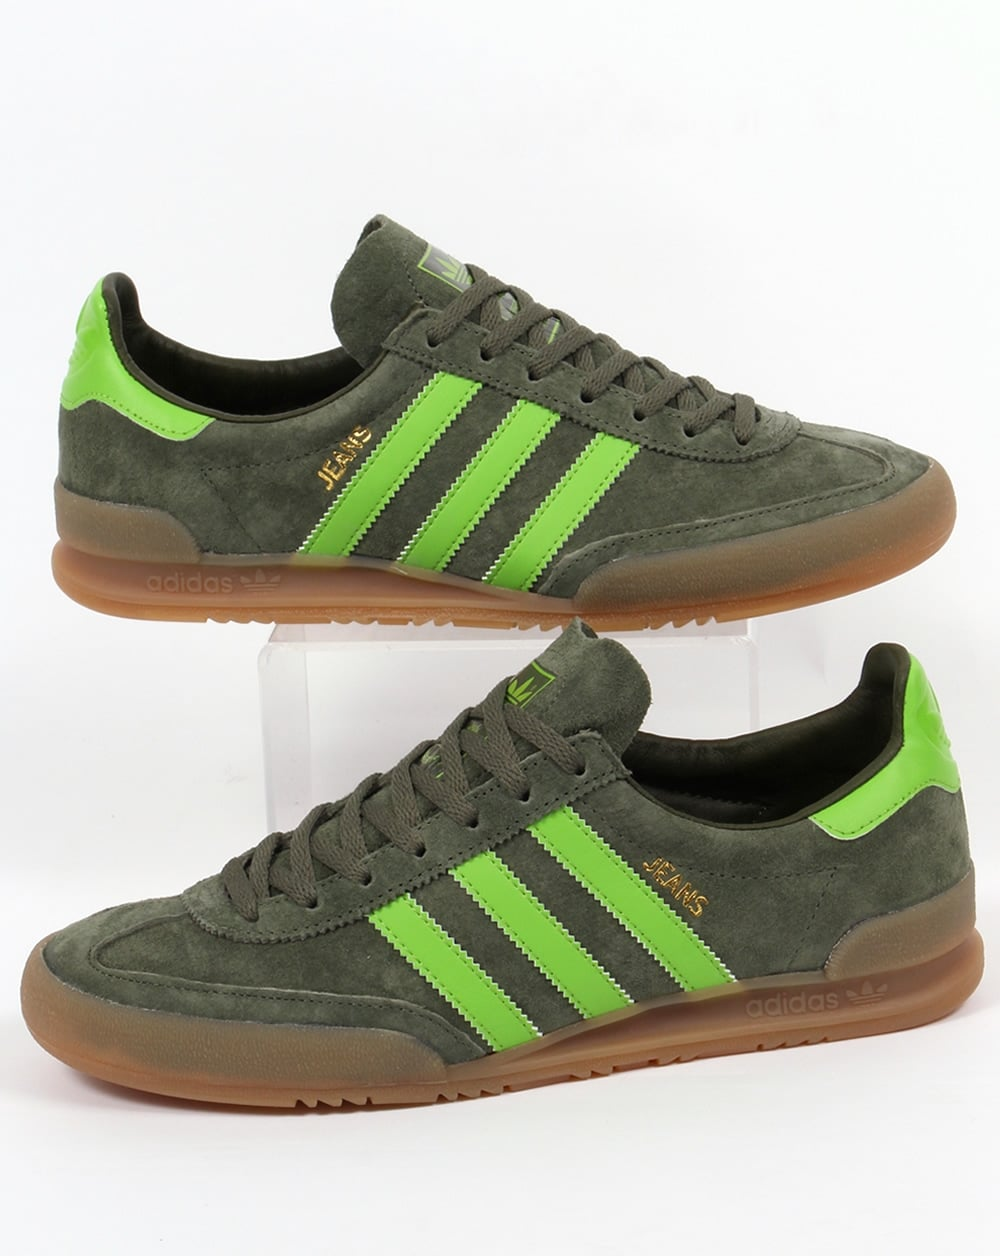 Adidas Jeans Trainers Green, Base